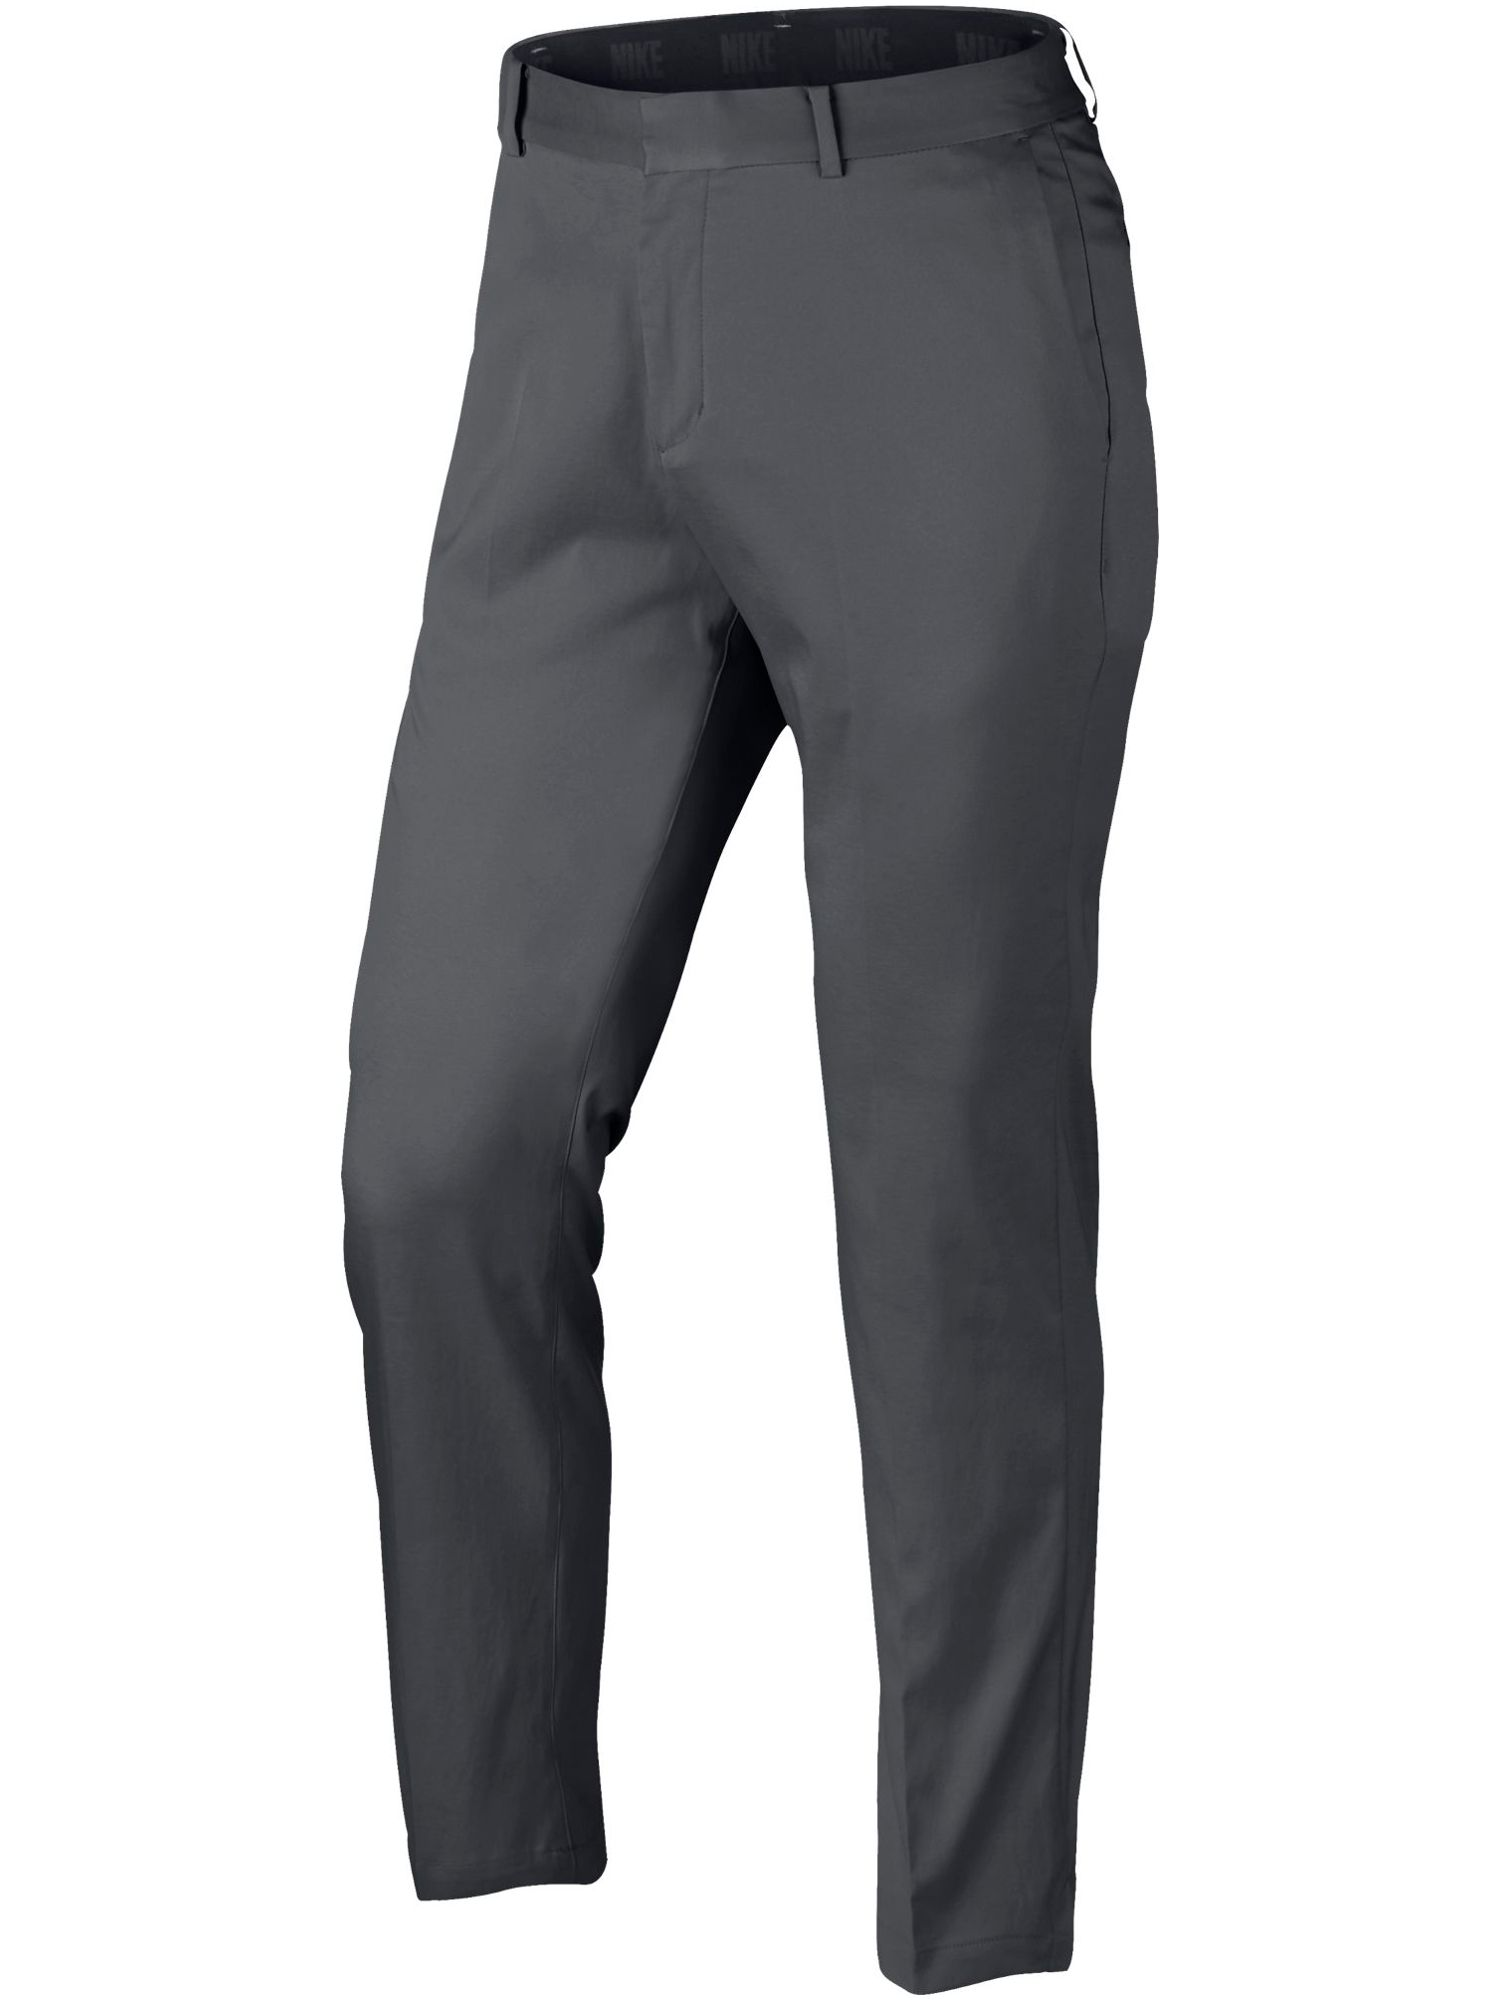 Mens Nike Flat Front Trousers Dark Grey